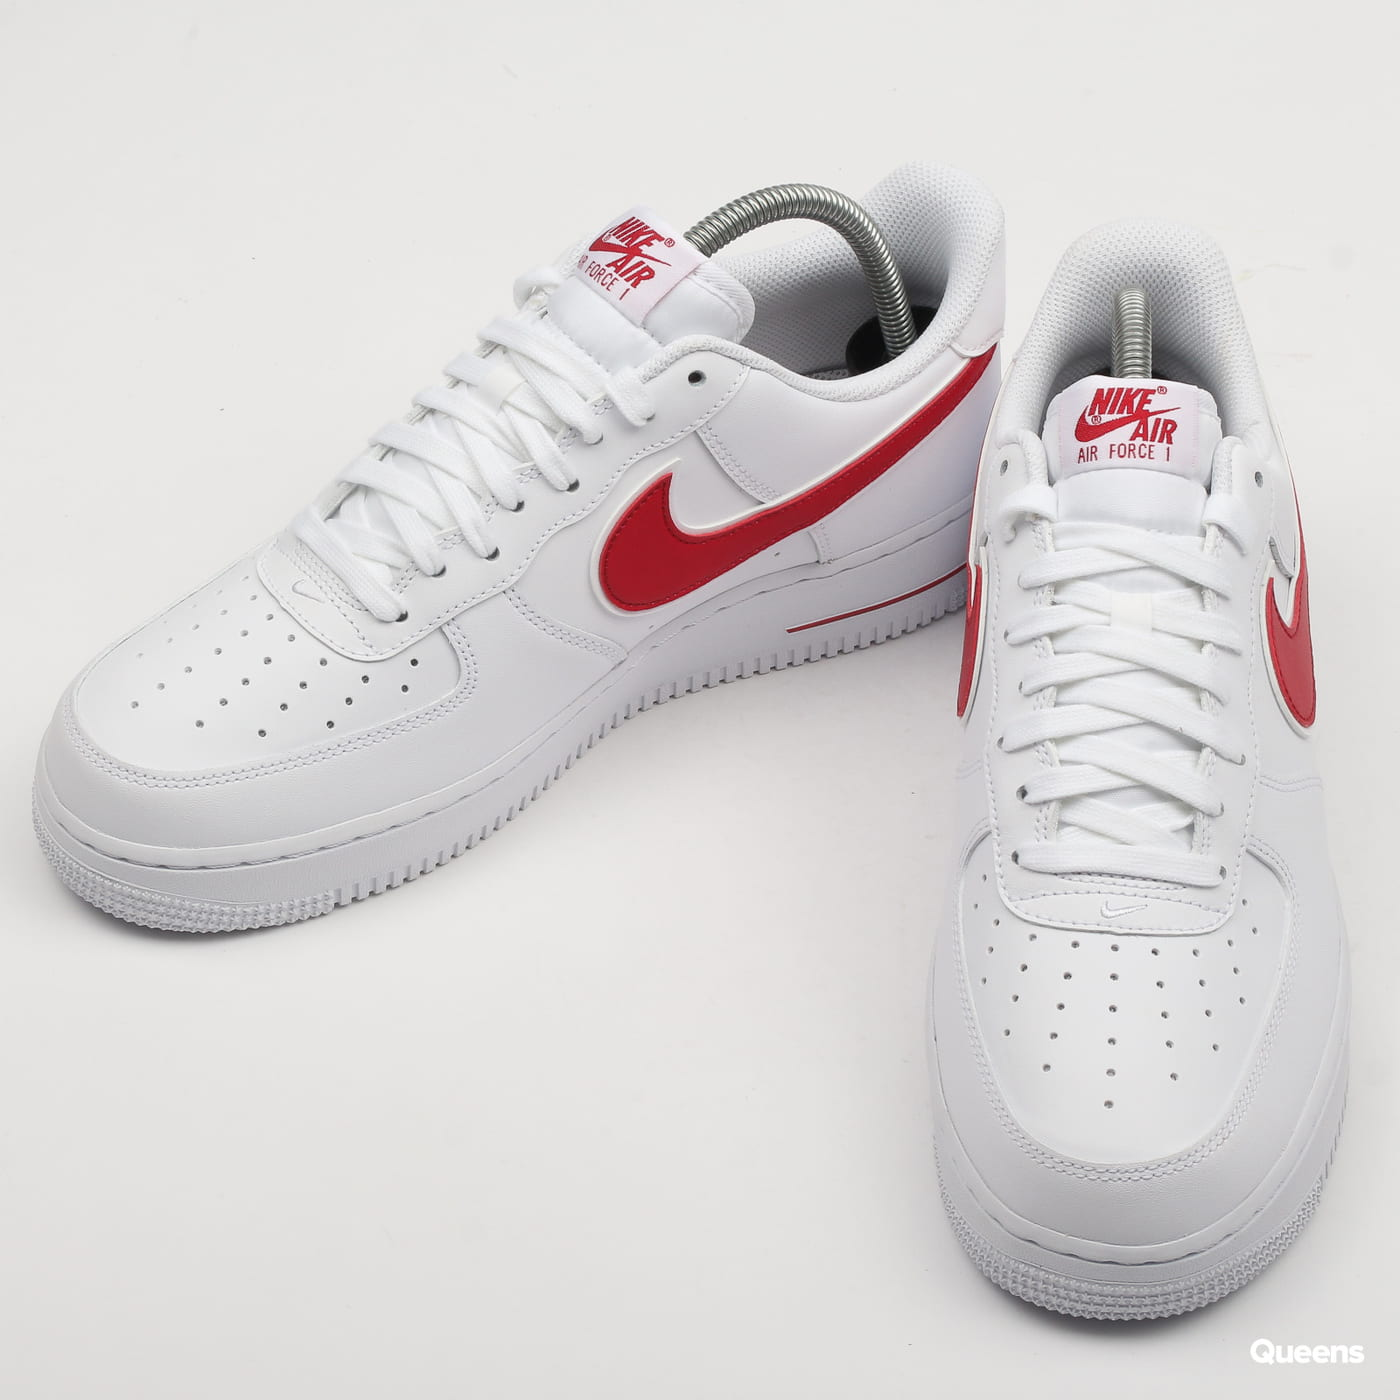 Nike Air Force 1 '07 3 white / gym red